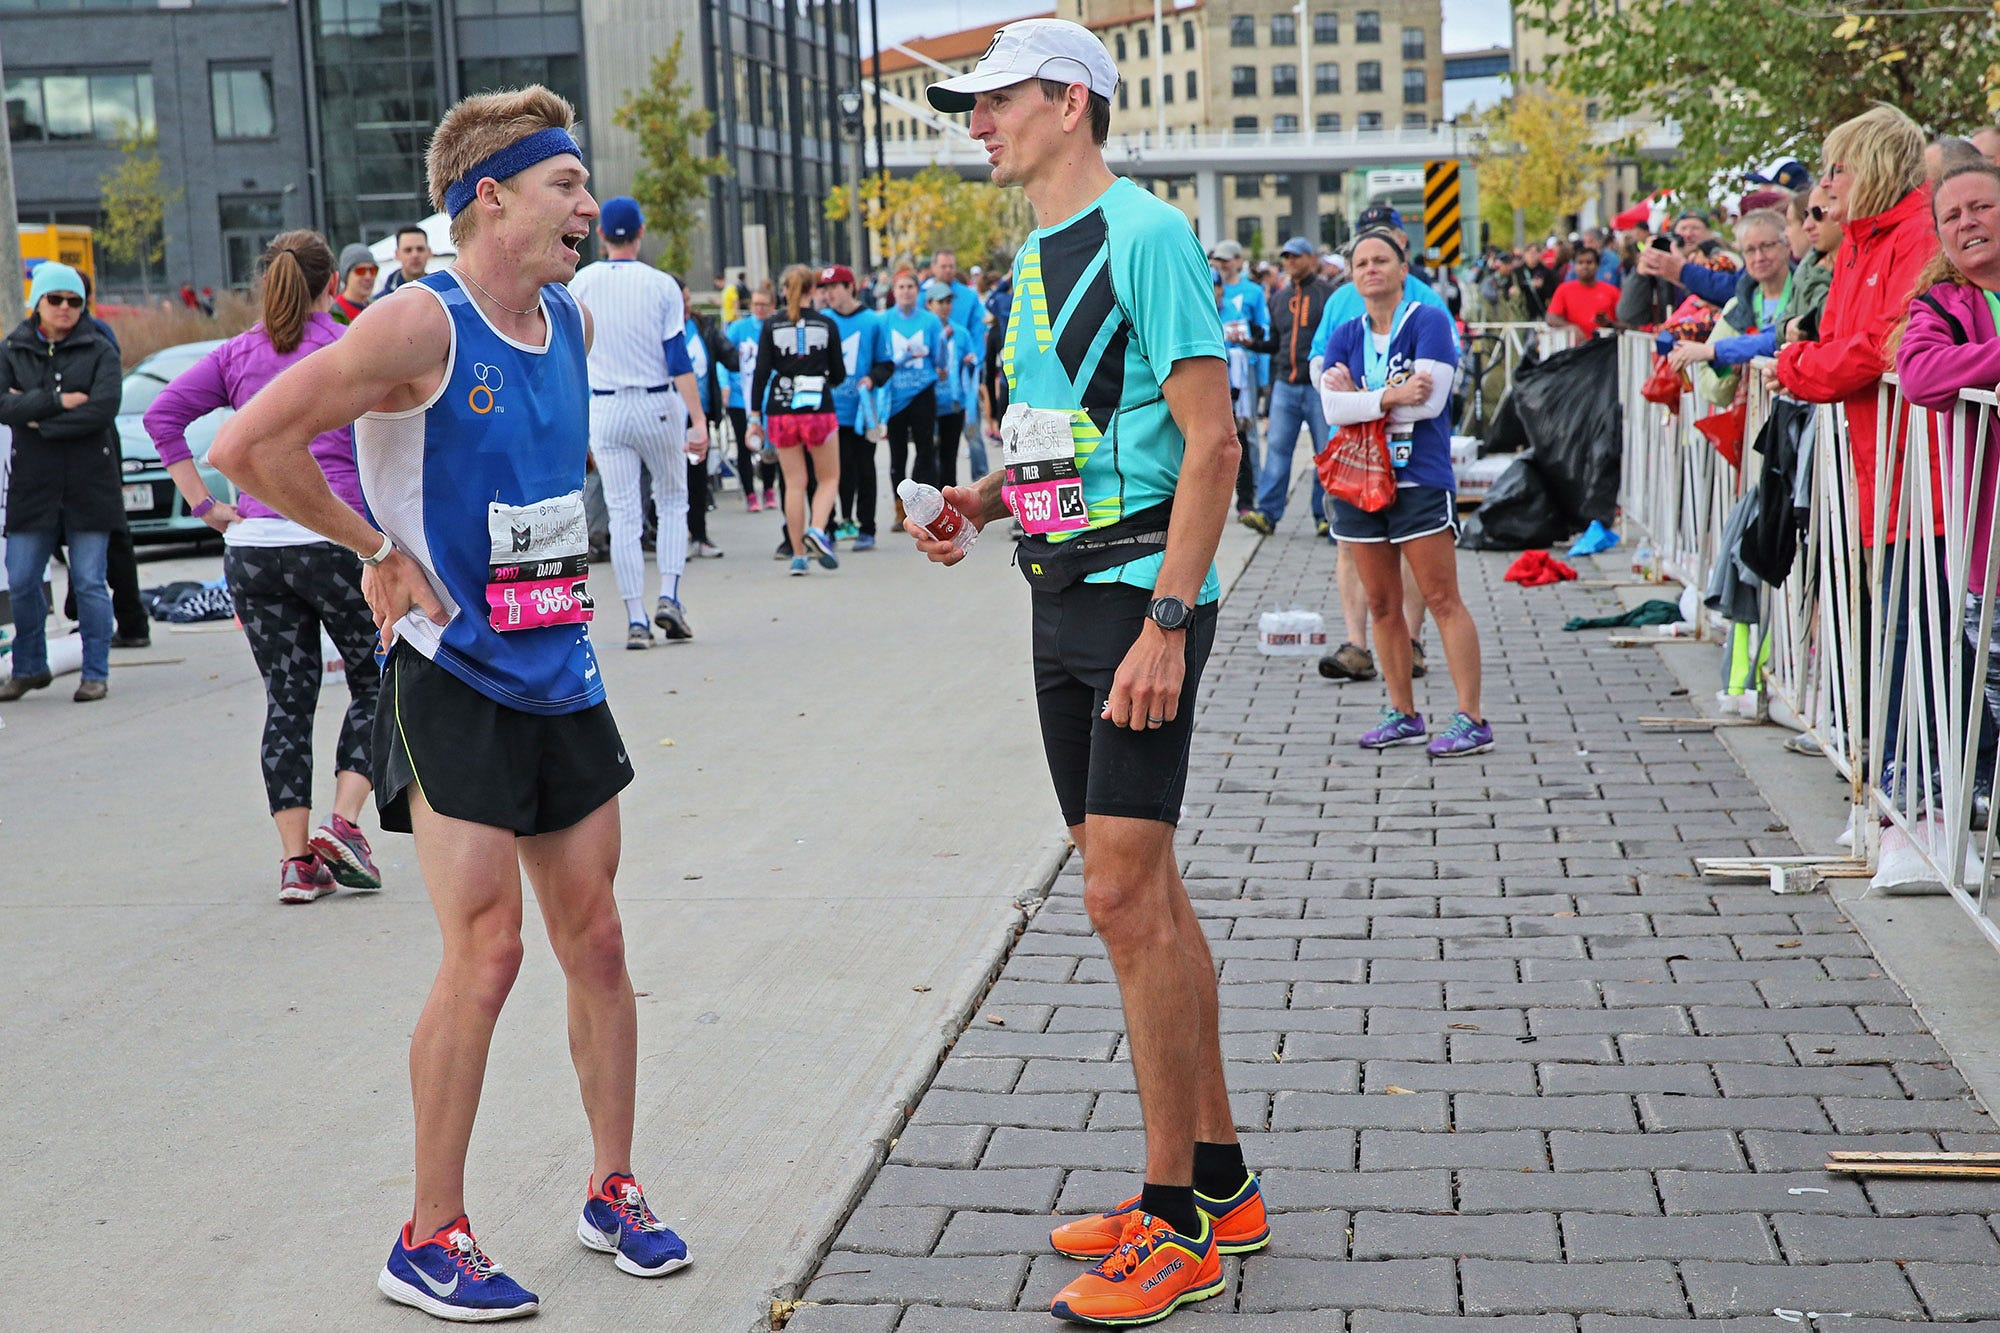 Marathon runners learn they didn't run a whole marathon — and it doesn't count